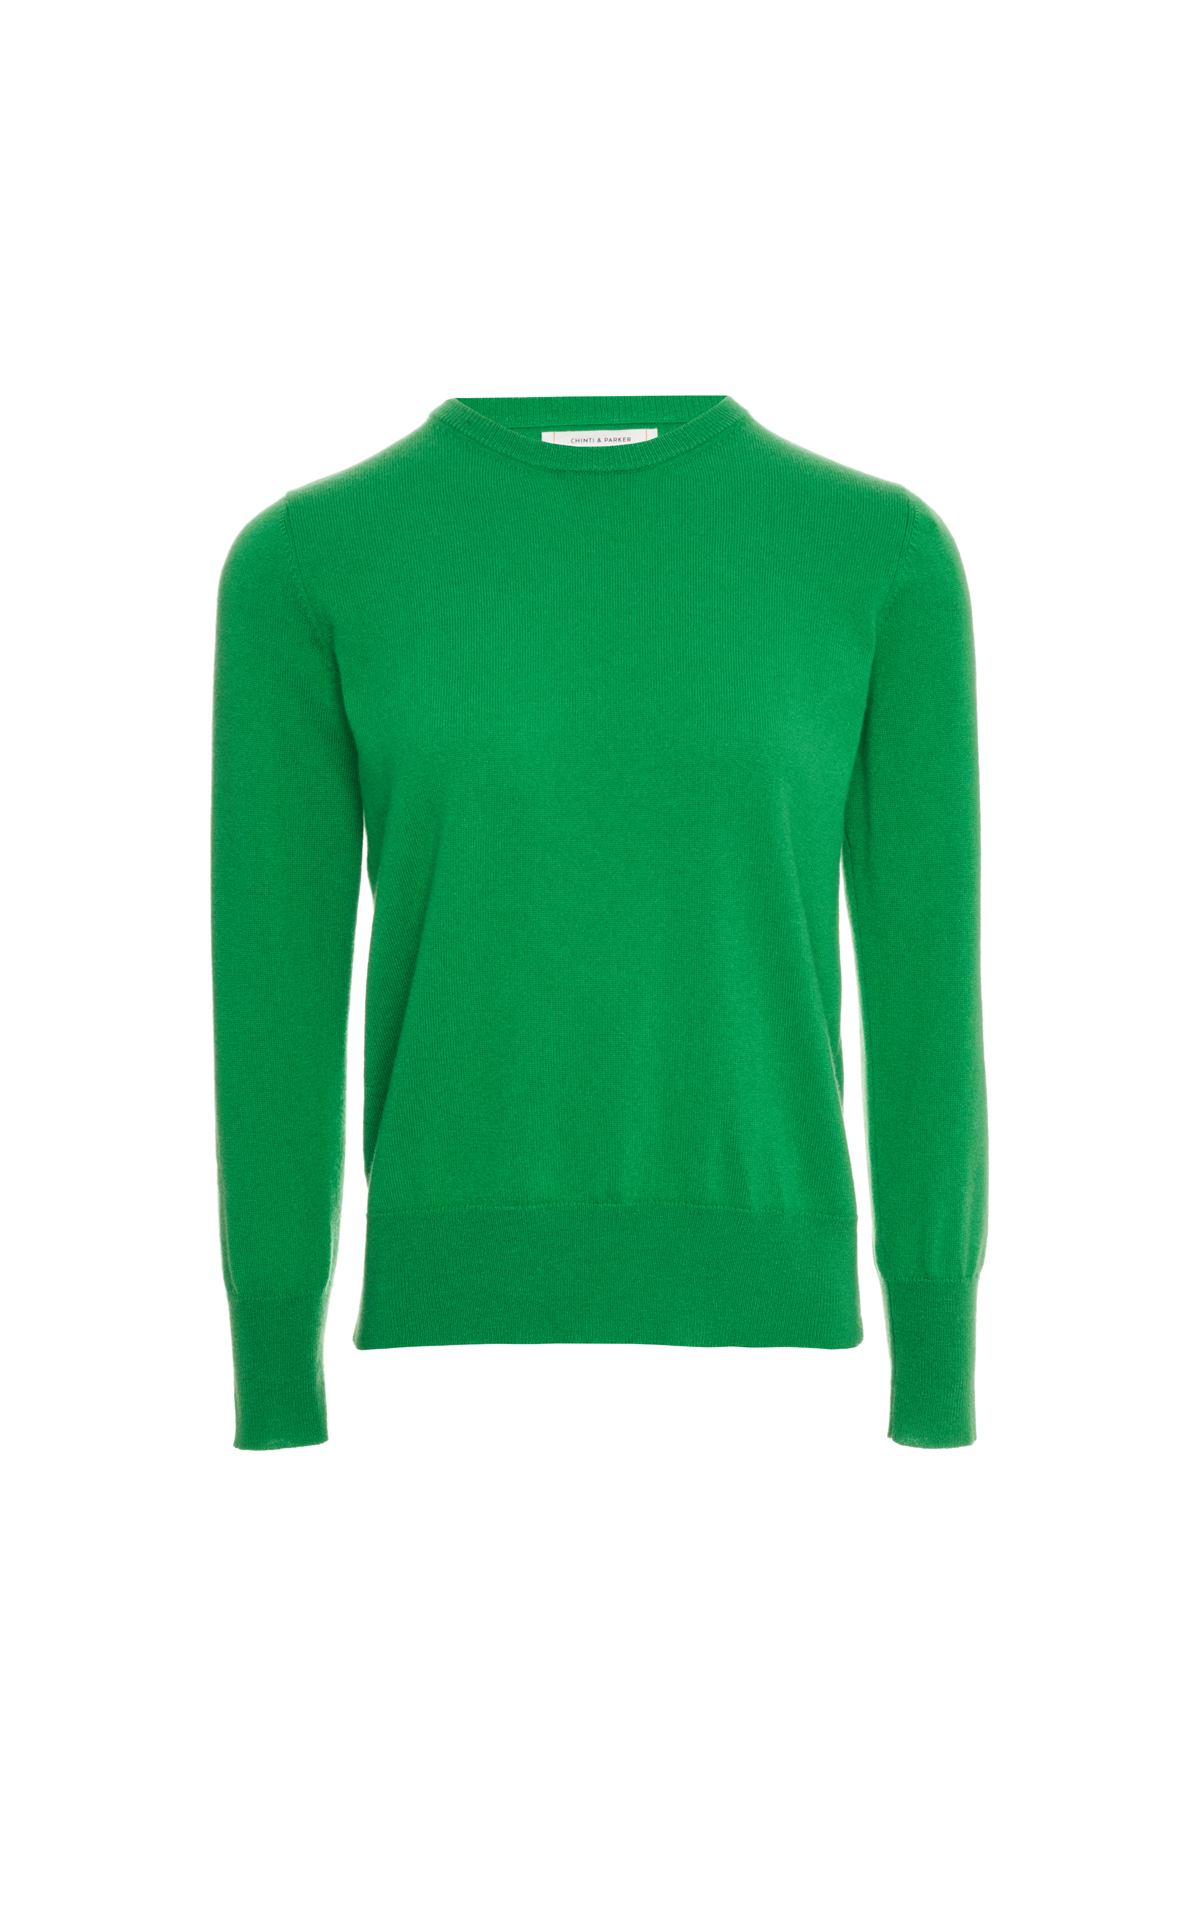 Chinti & Parker Apple crew neck sweater from Bicester Village